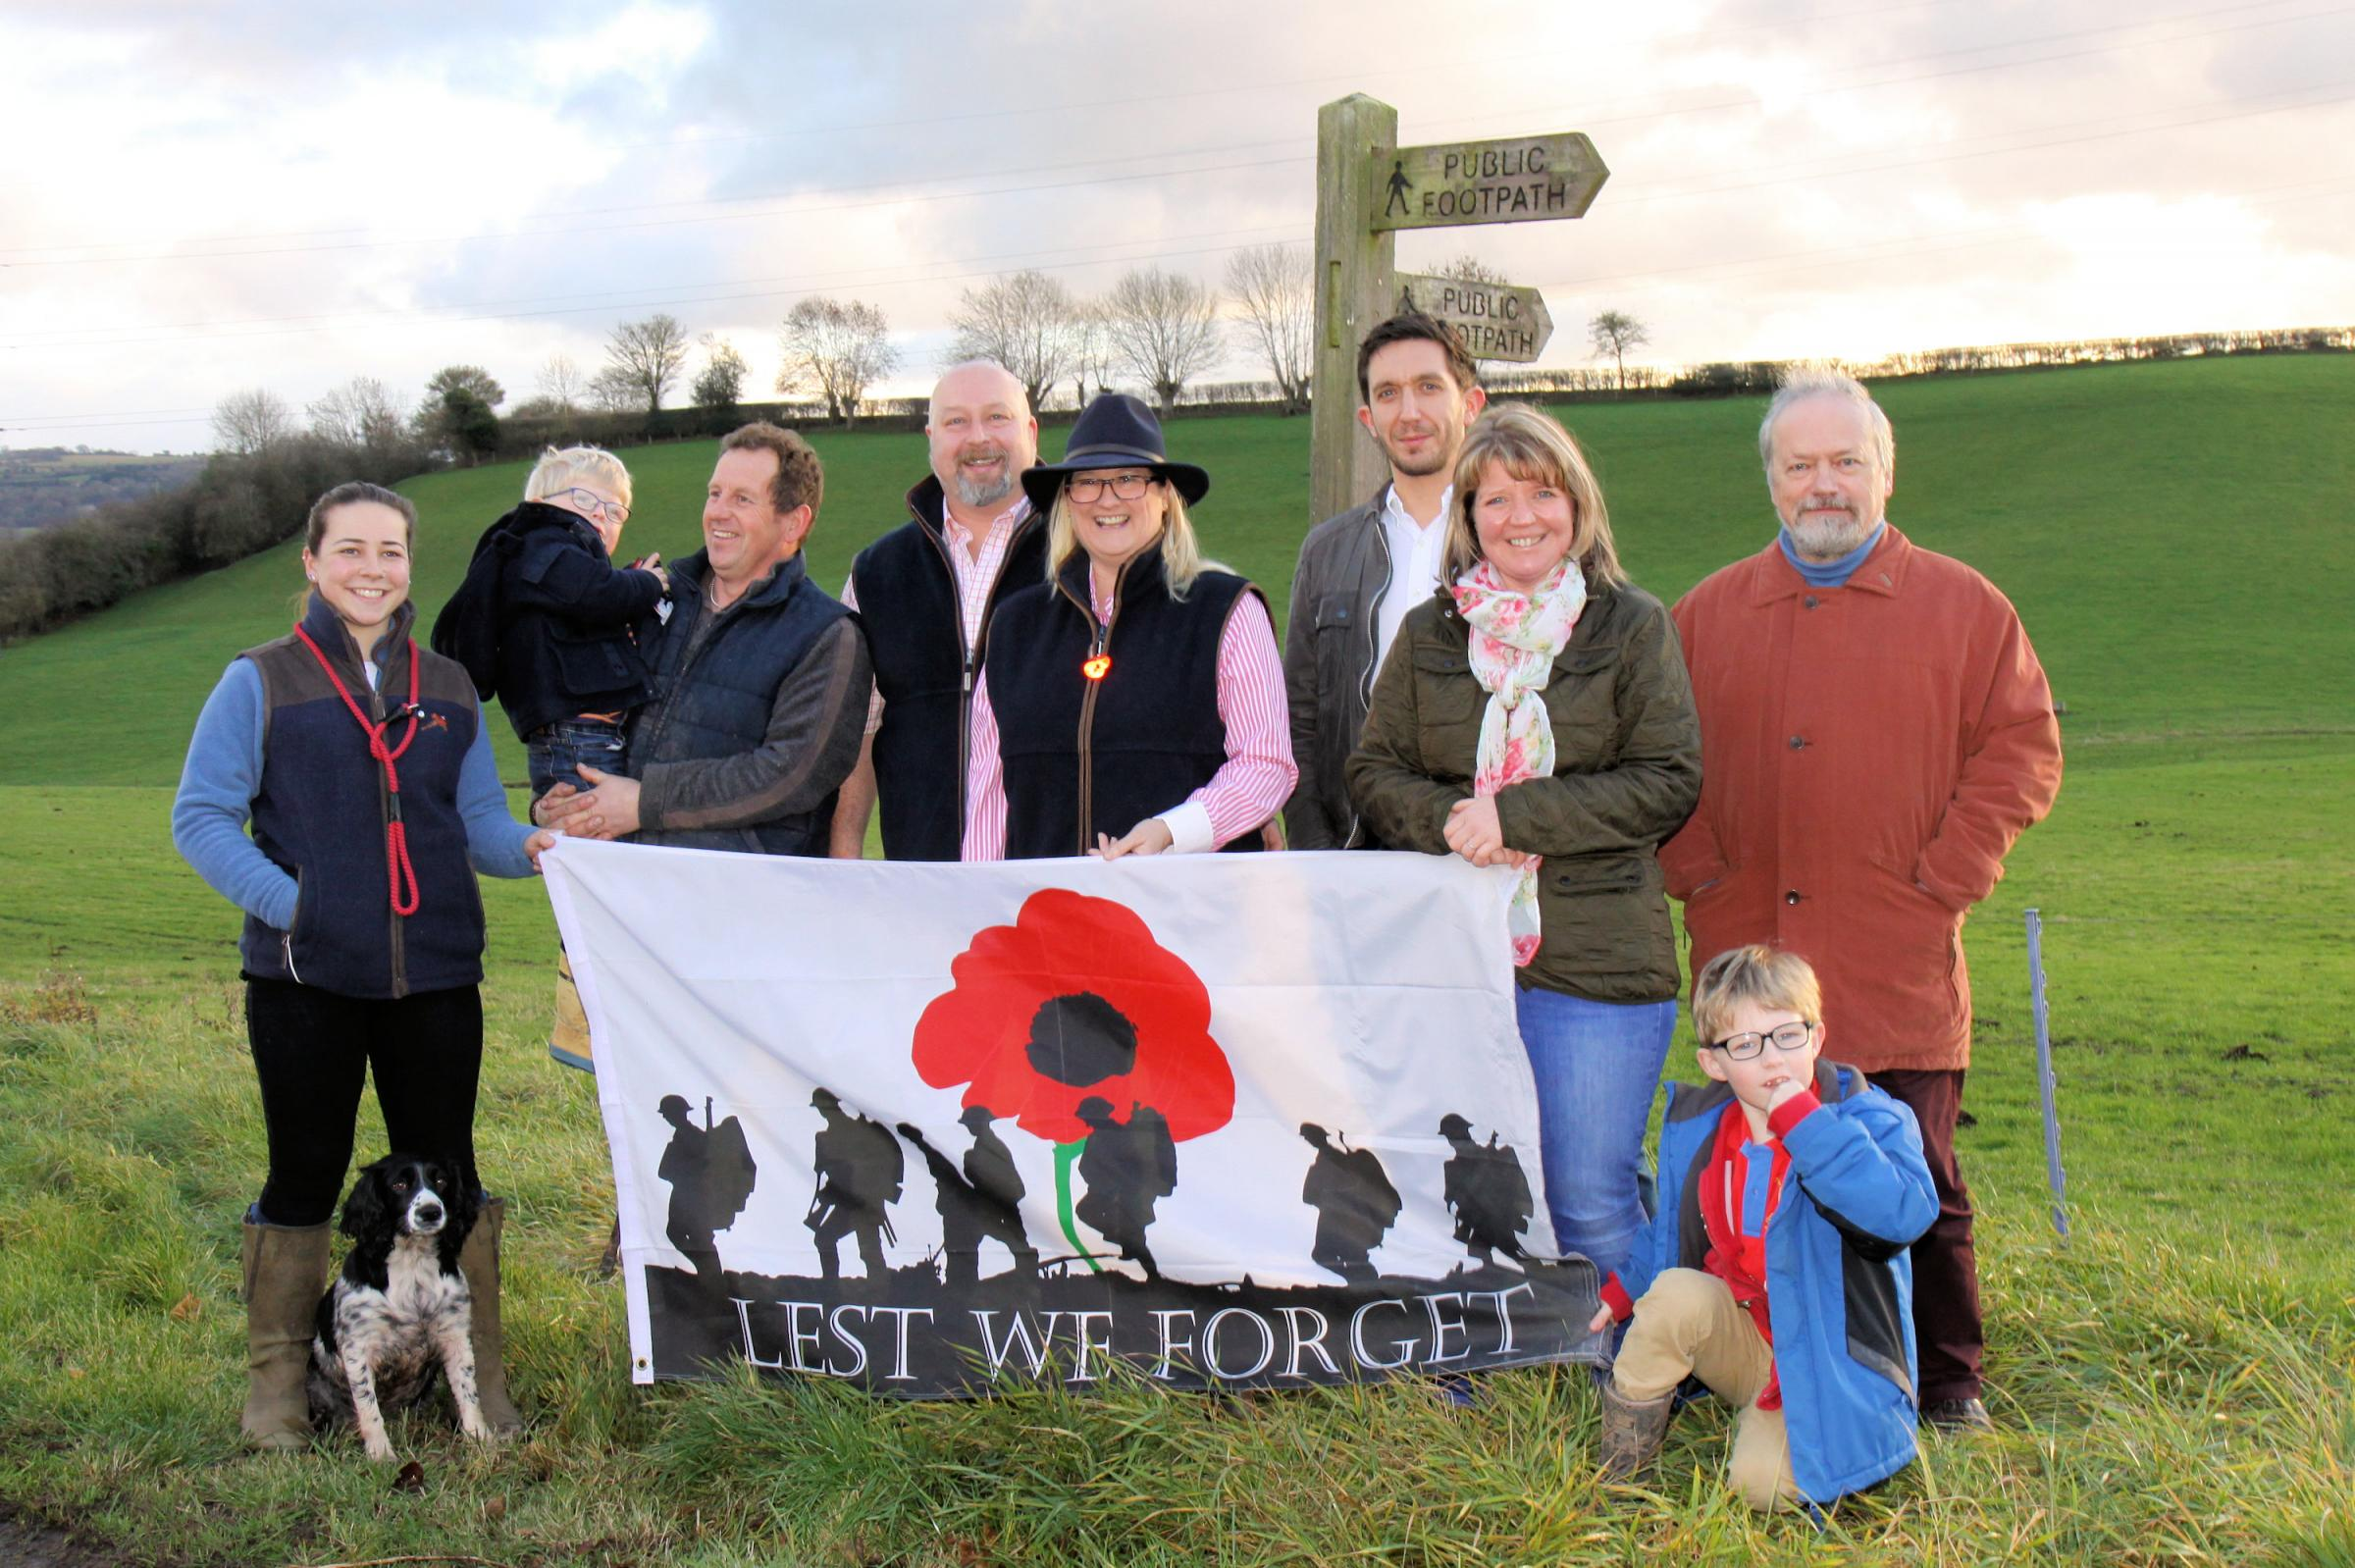 Project organisers and local residents at the proposed location - Saffie Howells with Clover, Sam and Ian Mapp, Duane and Dawn Hubbard, Barney Williams, Emma Mapp, Chris Dell and Jack Mapp